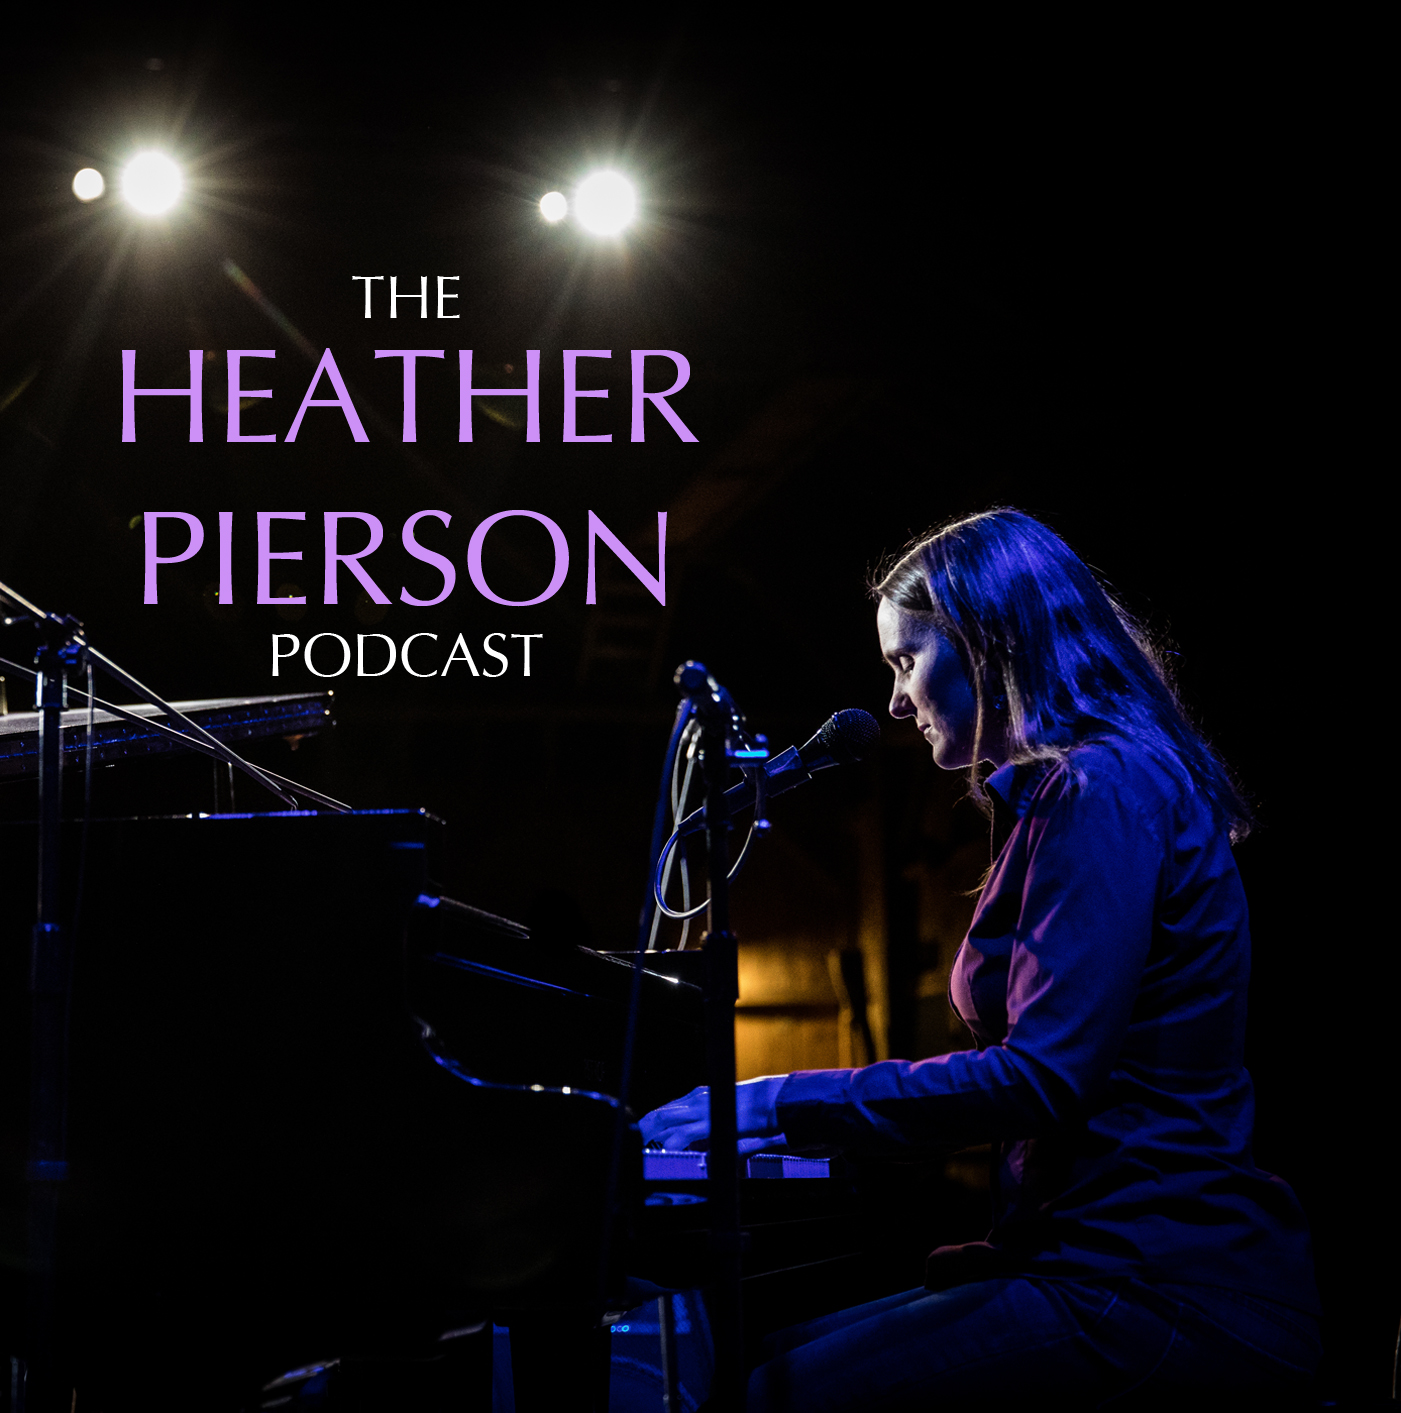 Artwork for The Heather Pierson Podcast - Episode 1